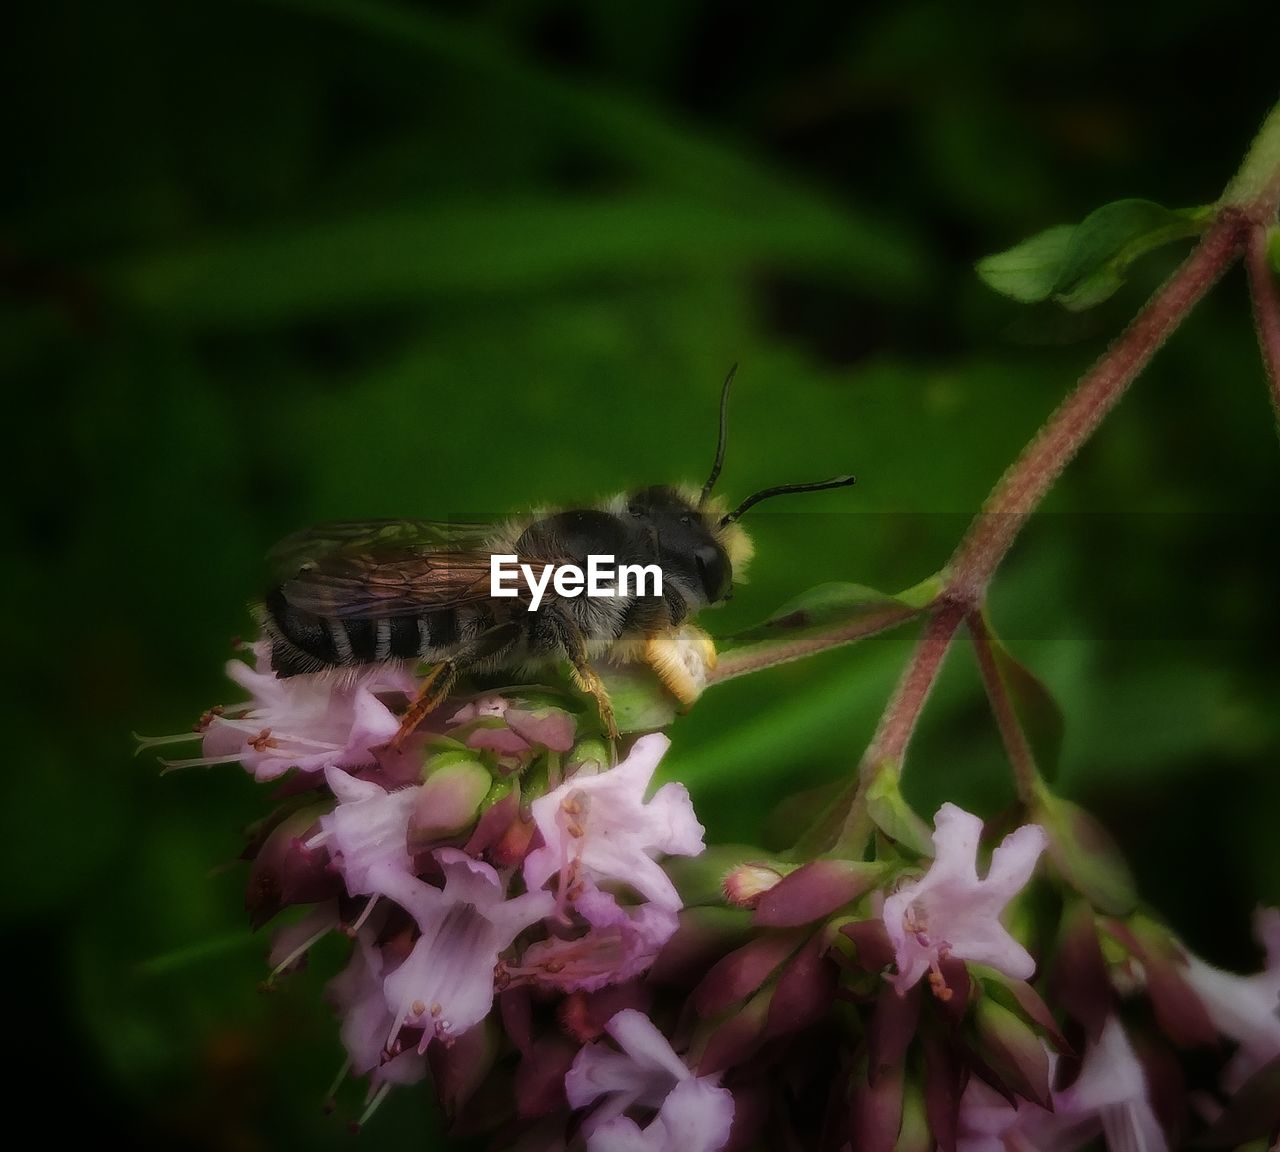 one animal, flower, animals in the wild, animal themes, insect, nature, fragility, plant, animal wildlife, growth, beauty in nature, pollination, petal, symbiotic relationship, no people, pink color, freshness, outdoors, close-up, bee, day, flower head, leaf, bumblebee, mammal